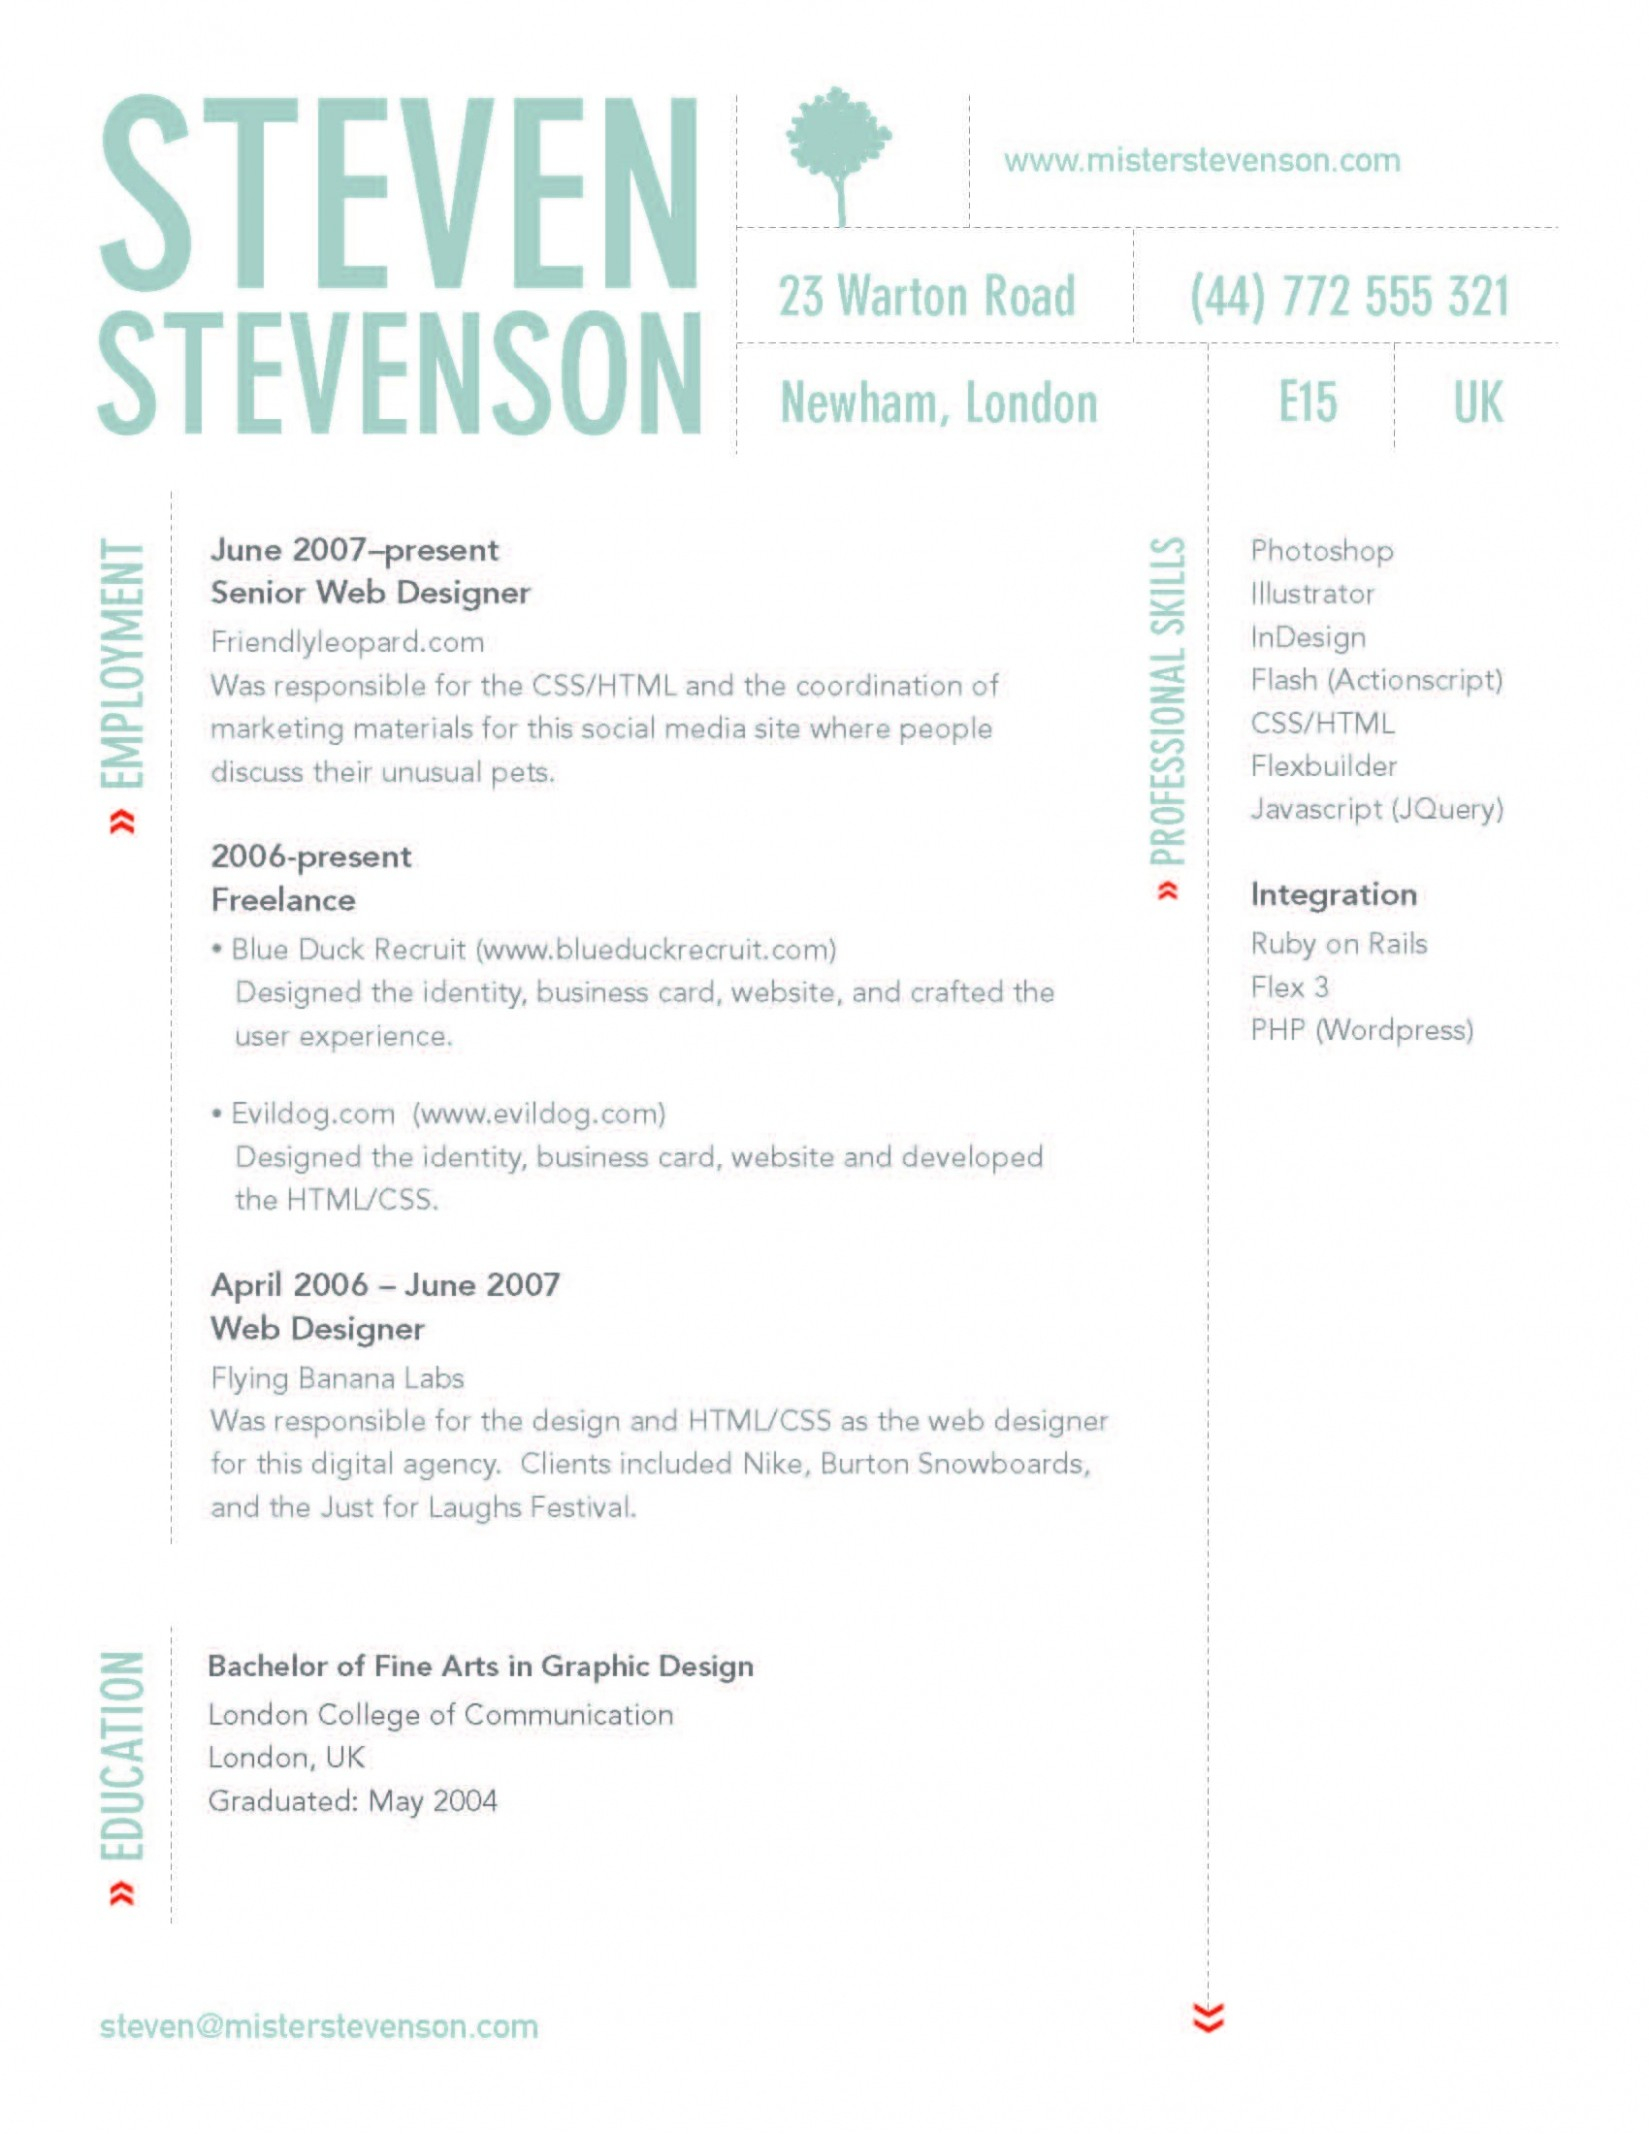 business card resume examples example-Resume Business Cards Lovely Beautiful Examples Resumes Ecologist Resume 0d Example Good Resume Business Cards 18-j